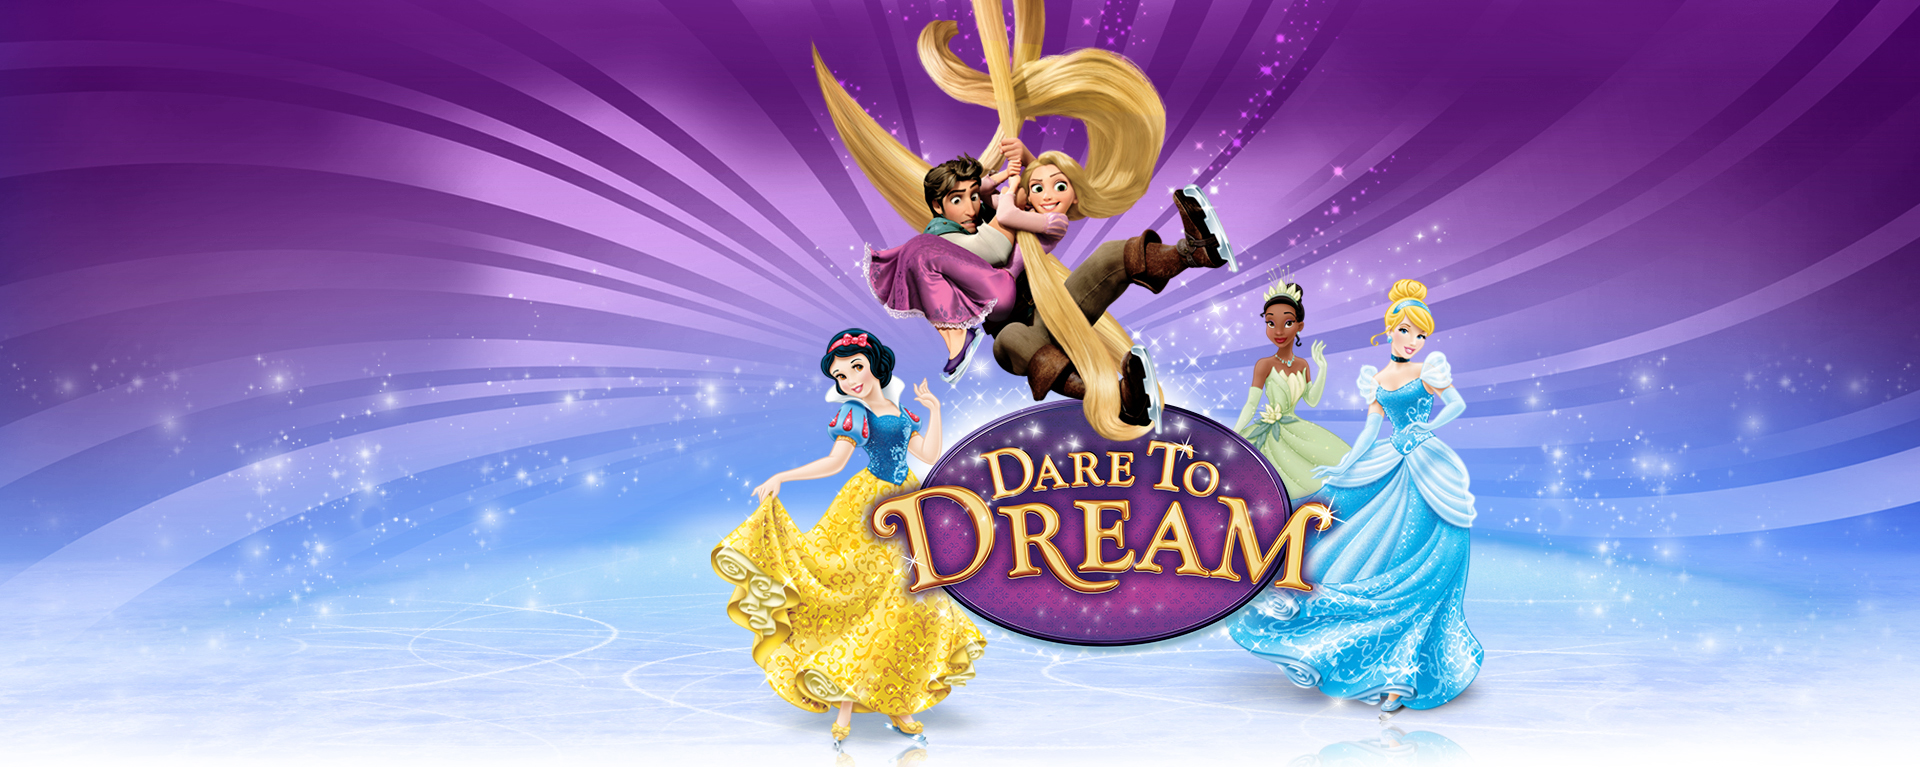 Disney on Ice returns to the EnergySolutions Arena with its Dare to Dream show.